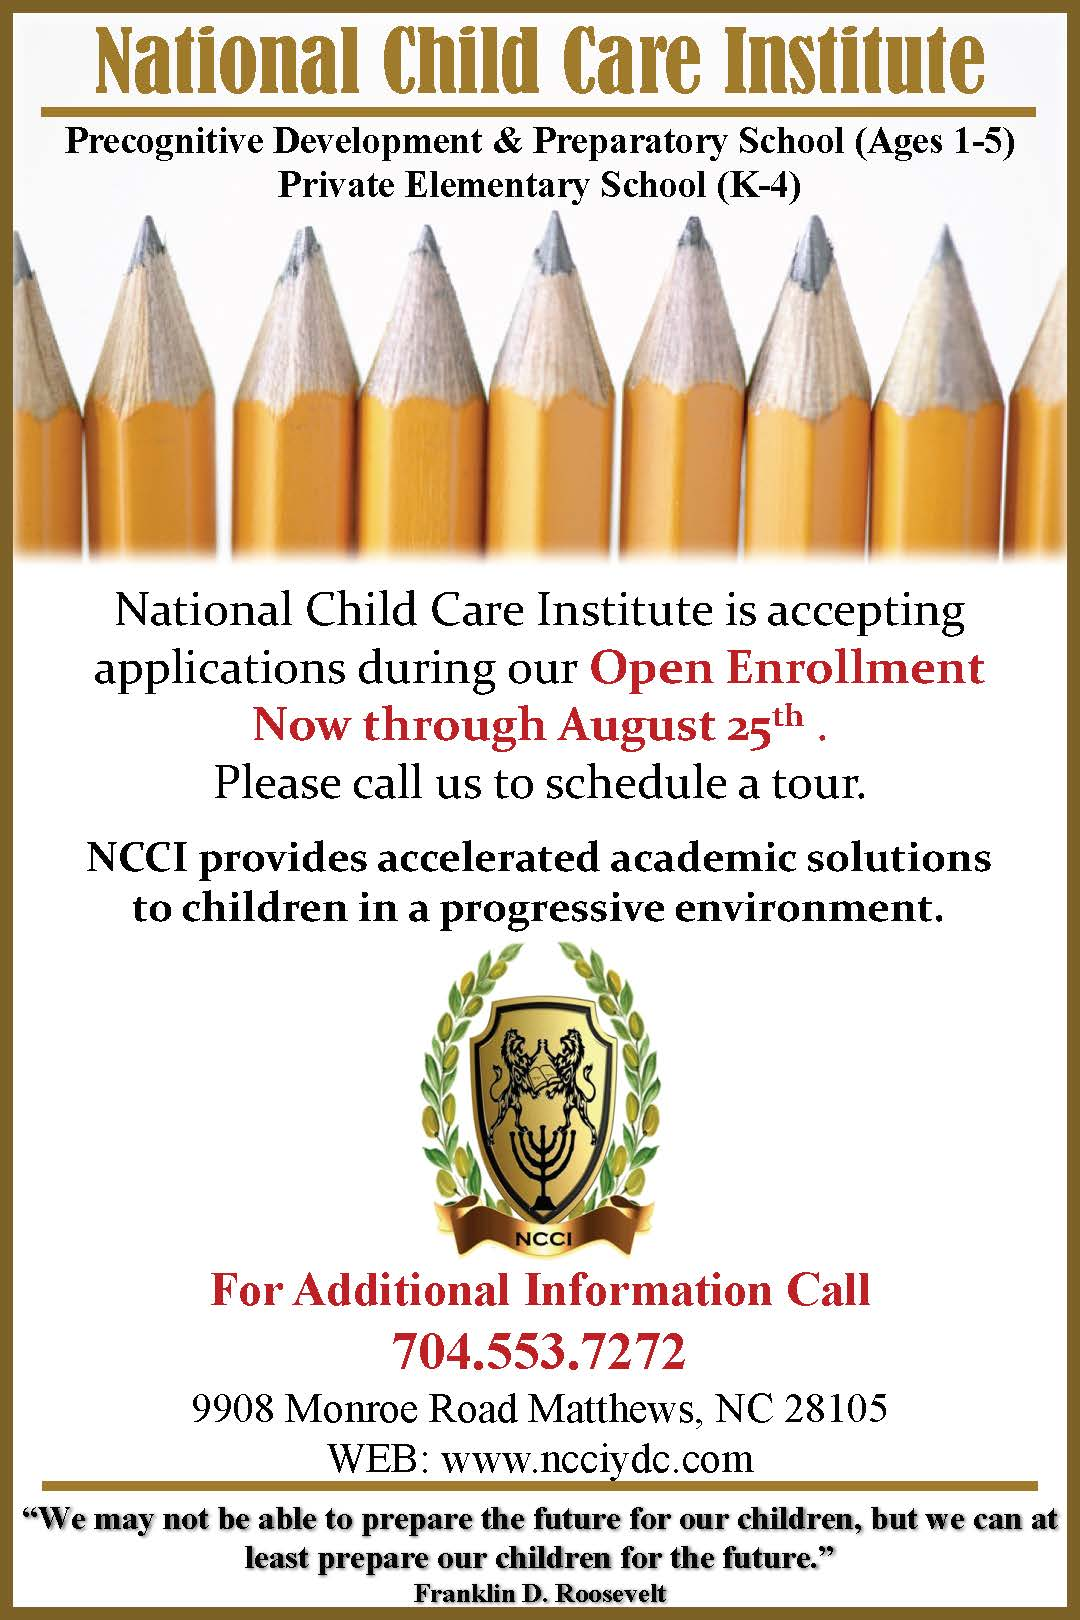 National Child Care Institute